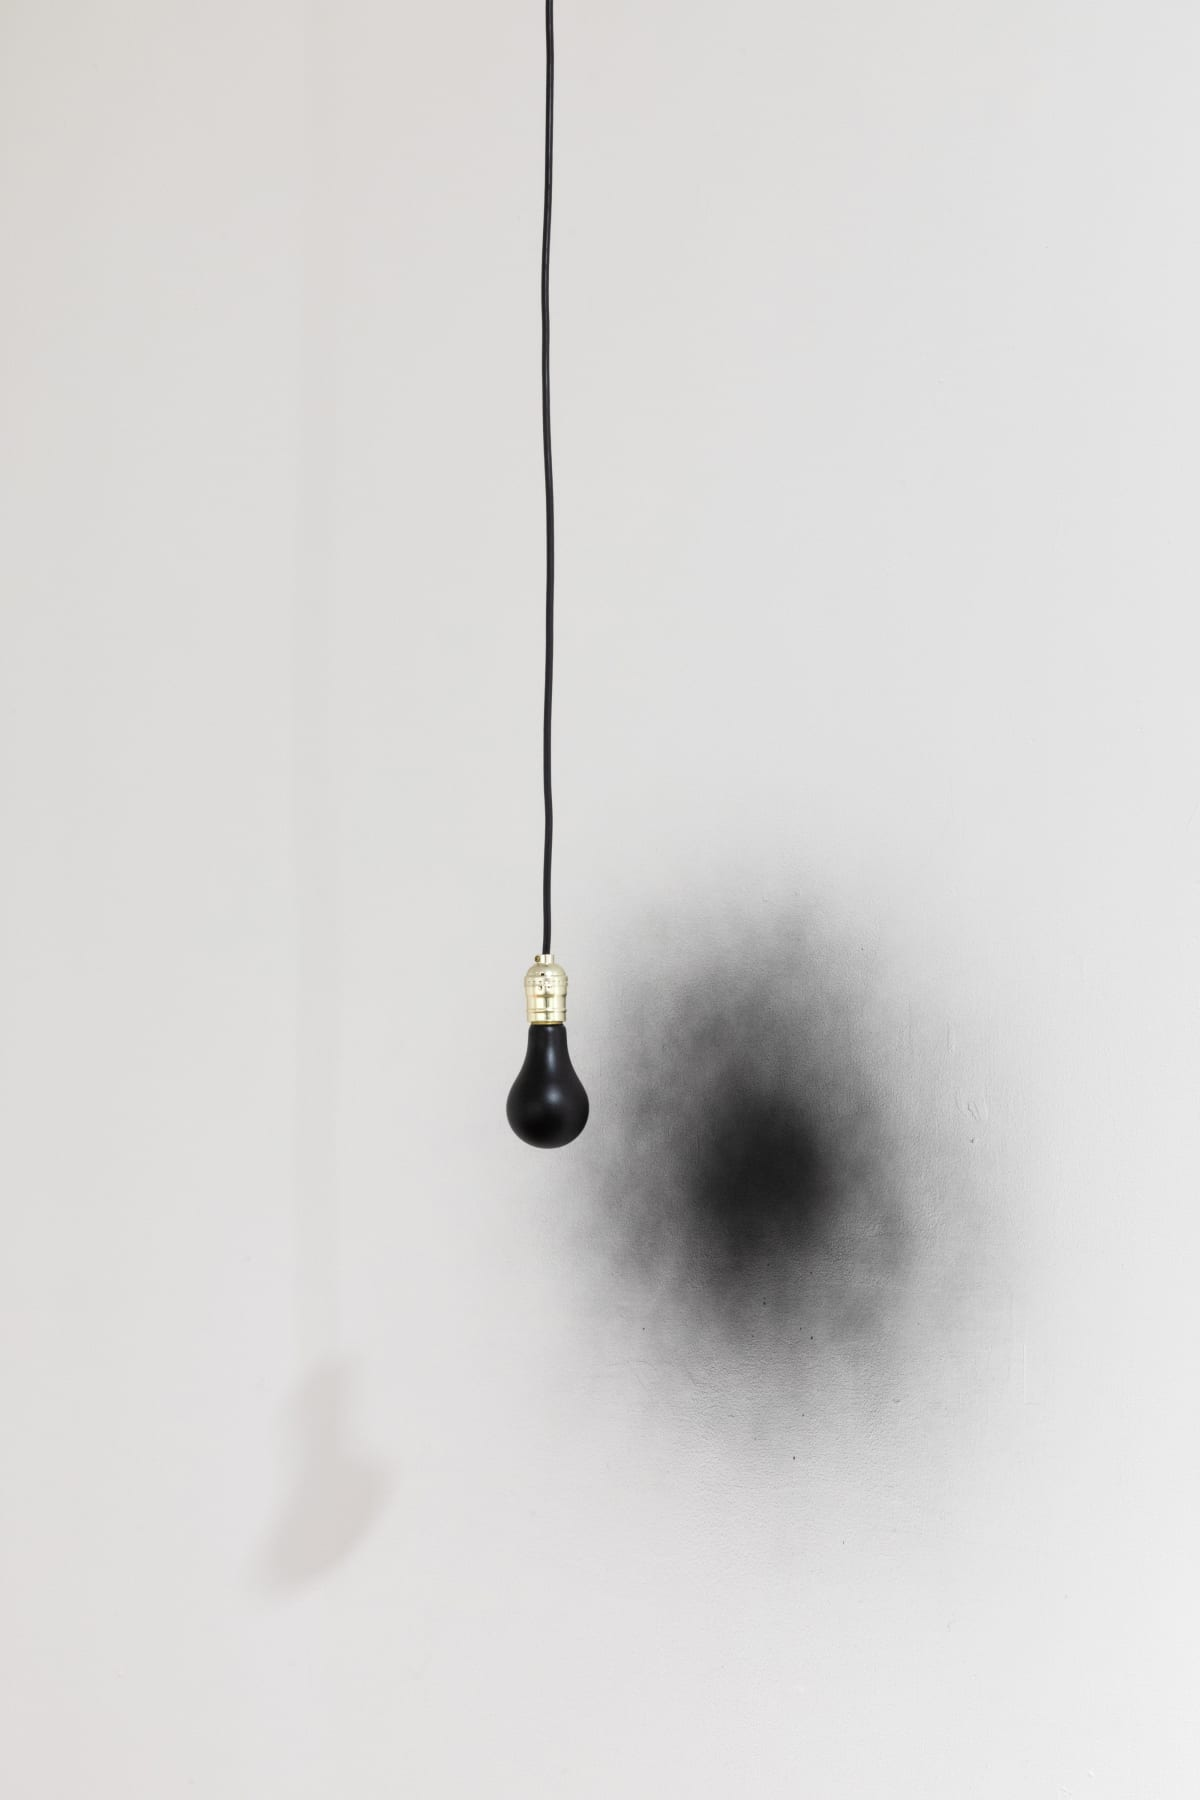 Ben Hagari Invert (bulb and socket), 2011 Bulb, socket, spray paint, electric cord, LED light Dimensions variable